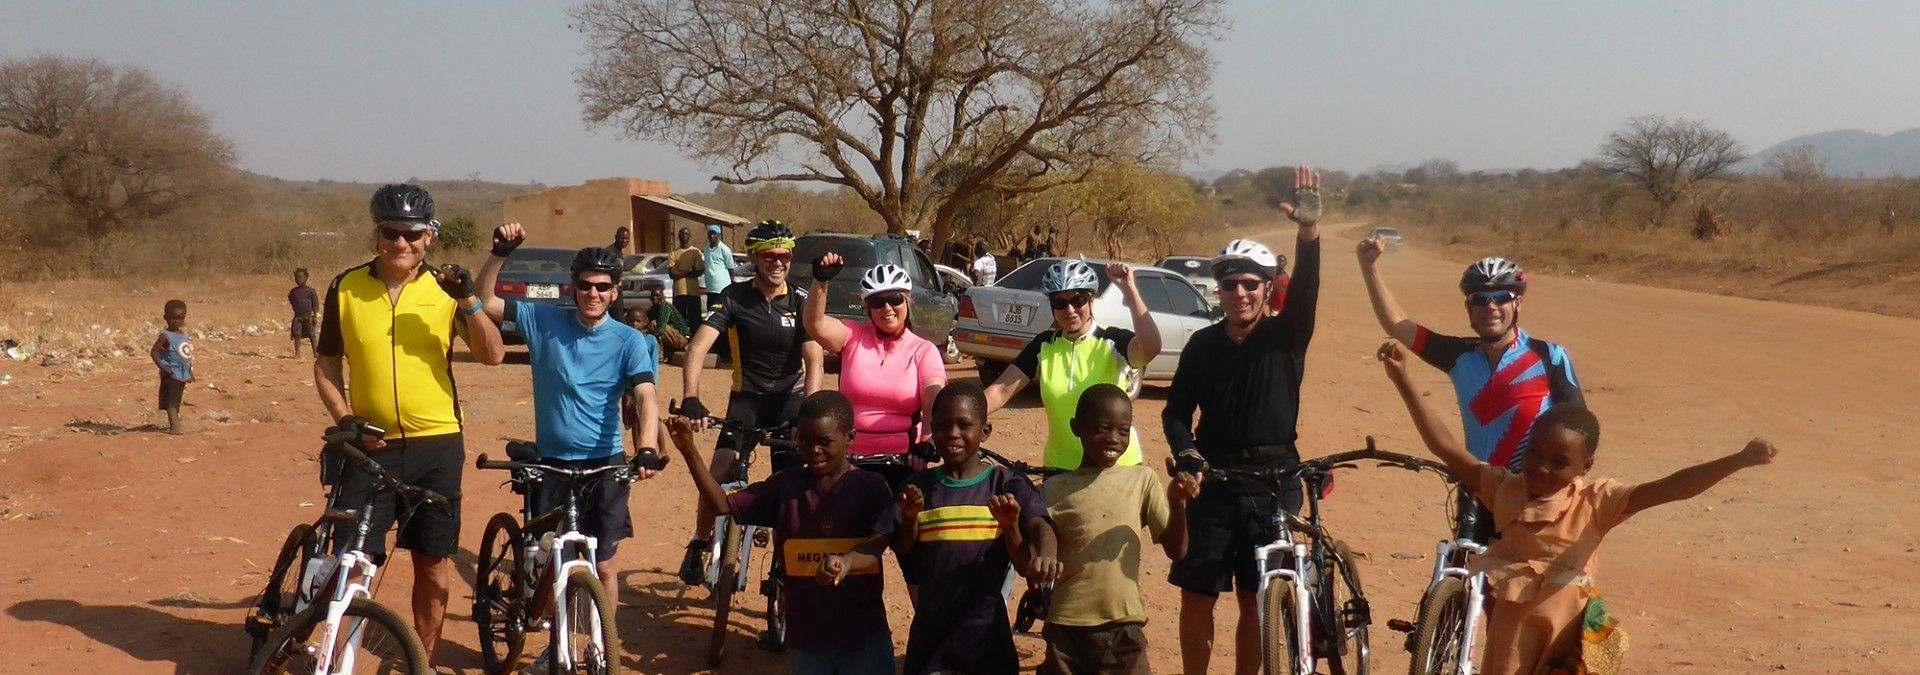 Challengers_with_local_children_Zambia_cycle.jpg